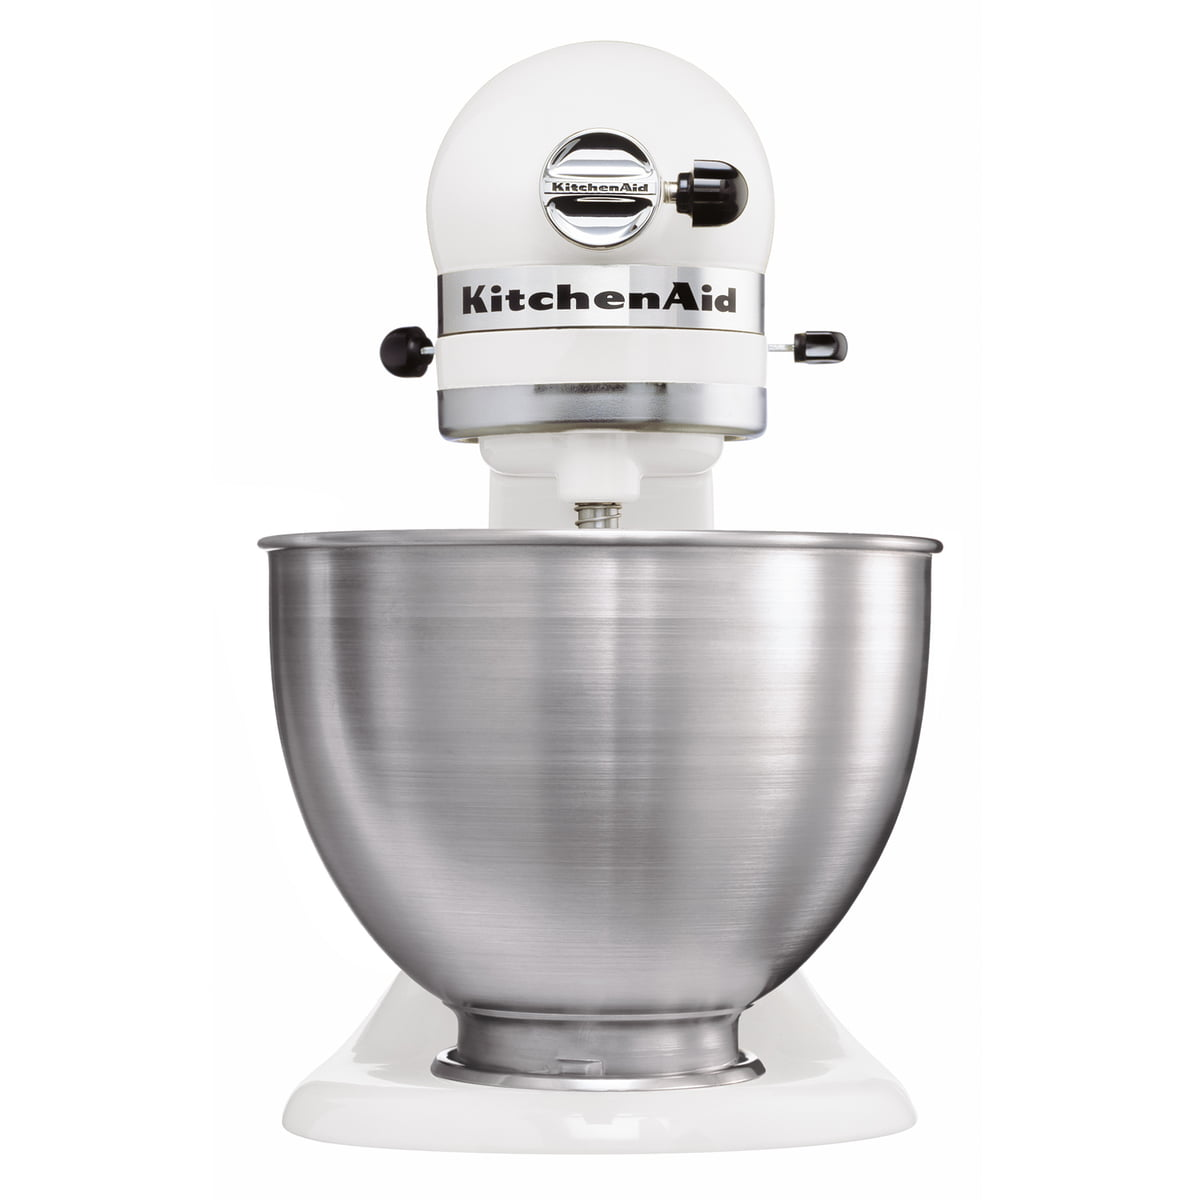 White Kitchenaid classic kitchen appliance 4,3 lkitchenaid